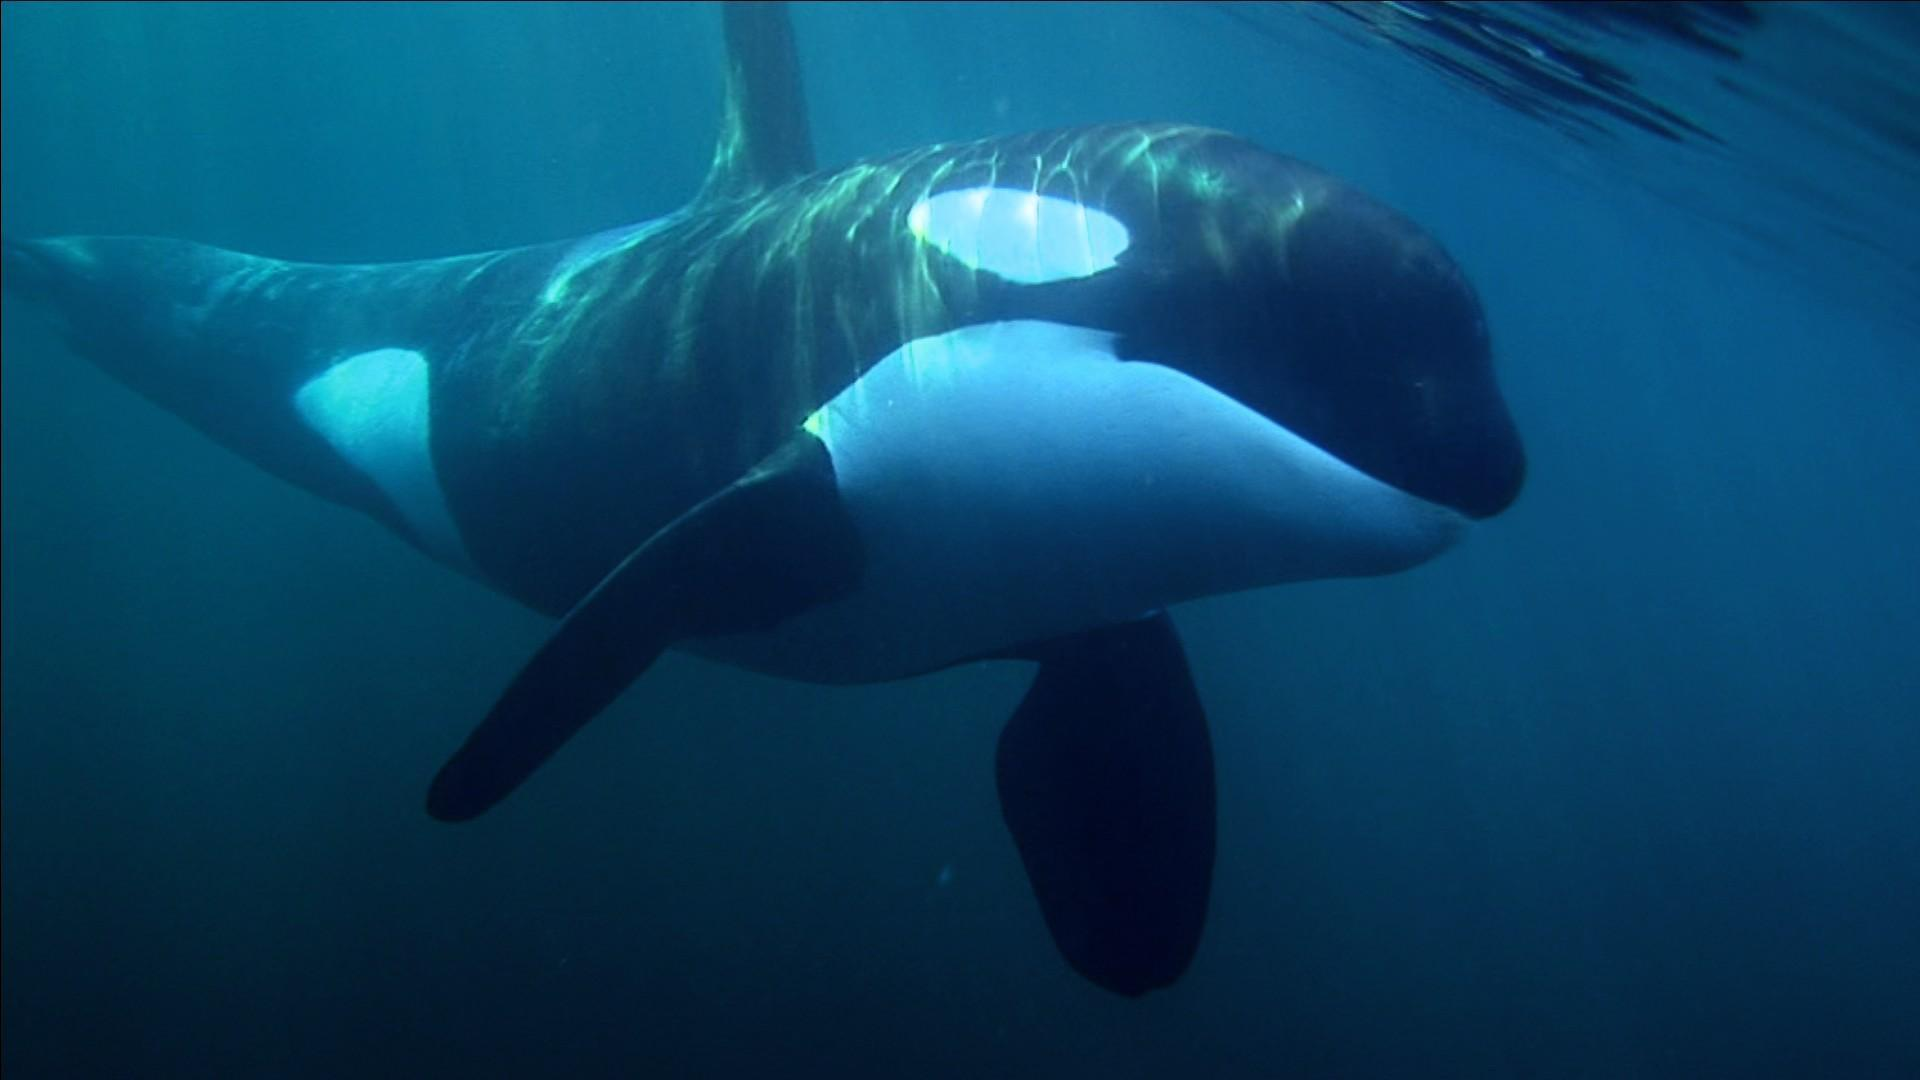 Orca Whale Wallpapers - Wallpaper Cave